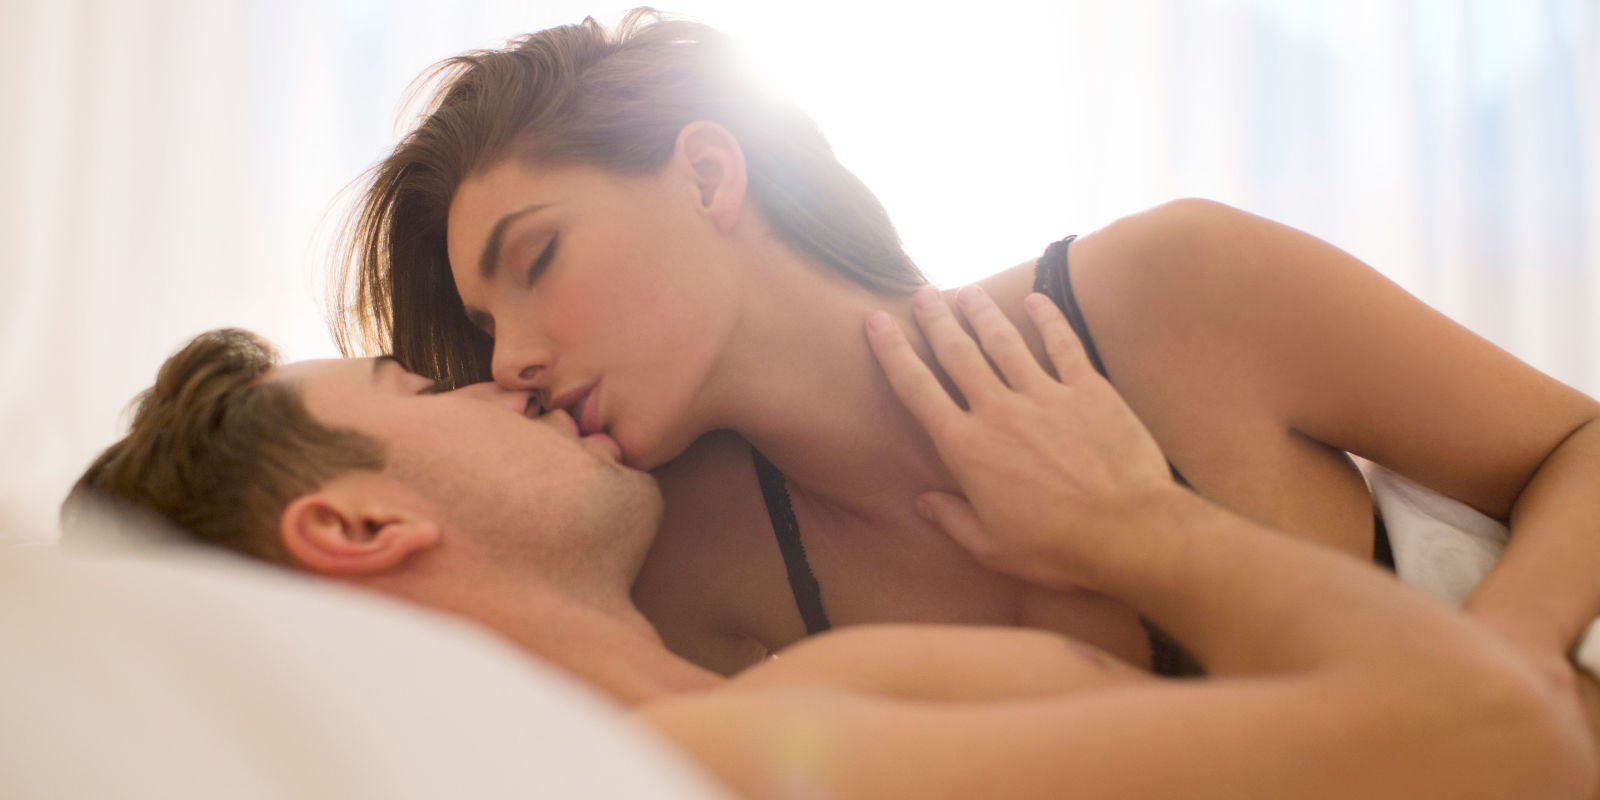 sexy couple fucking in bed